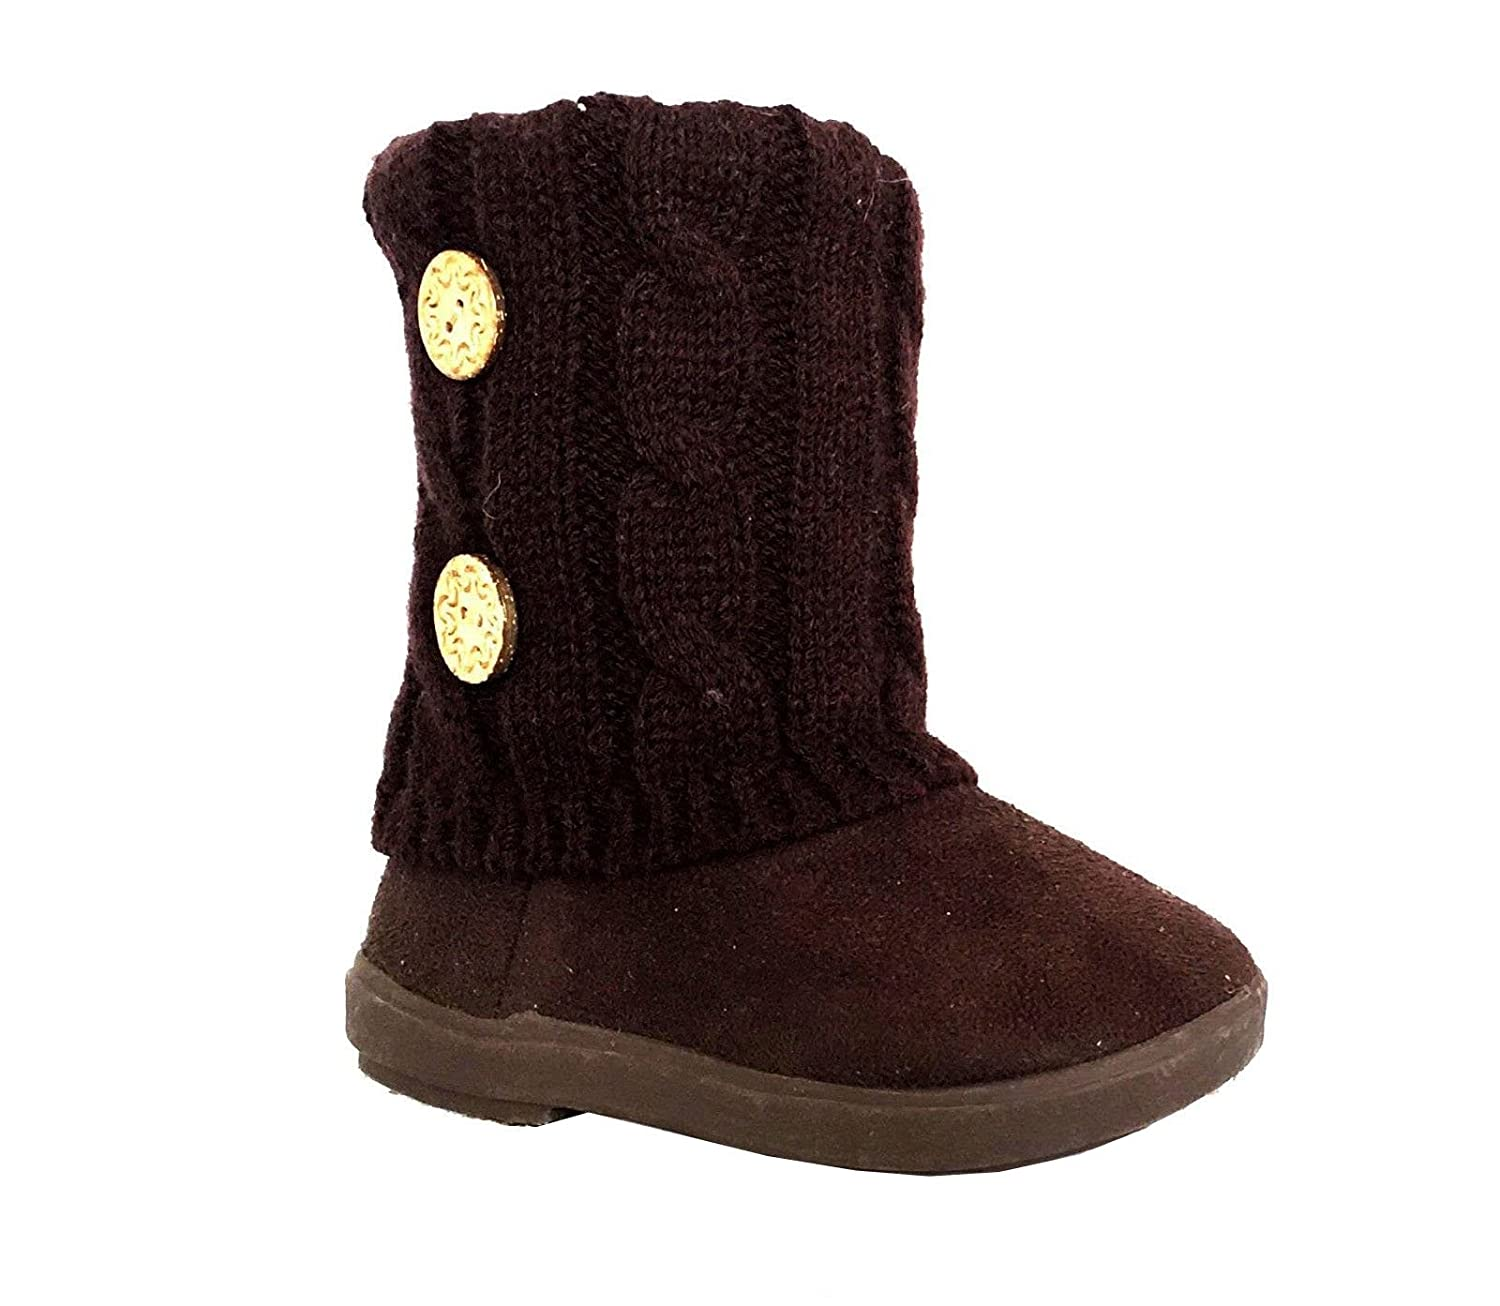 Kids Boots Toddler Girls Cute 2 Buttons Faux Fur Suede Knitting Shoe | 285 SB-285